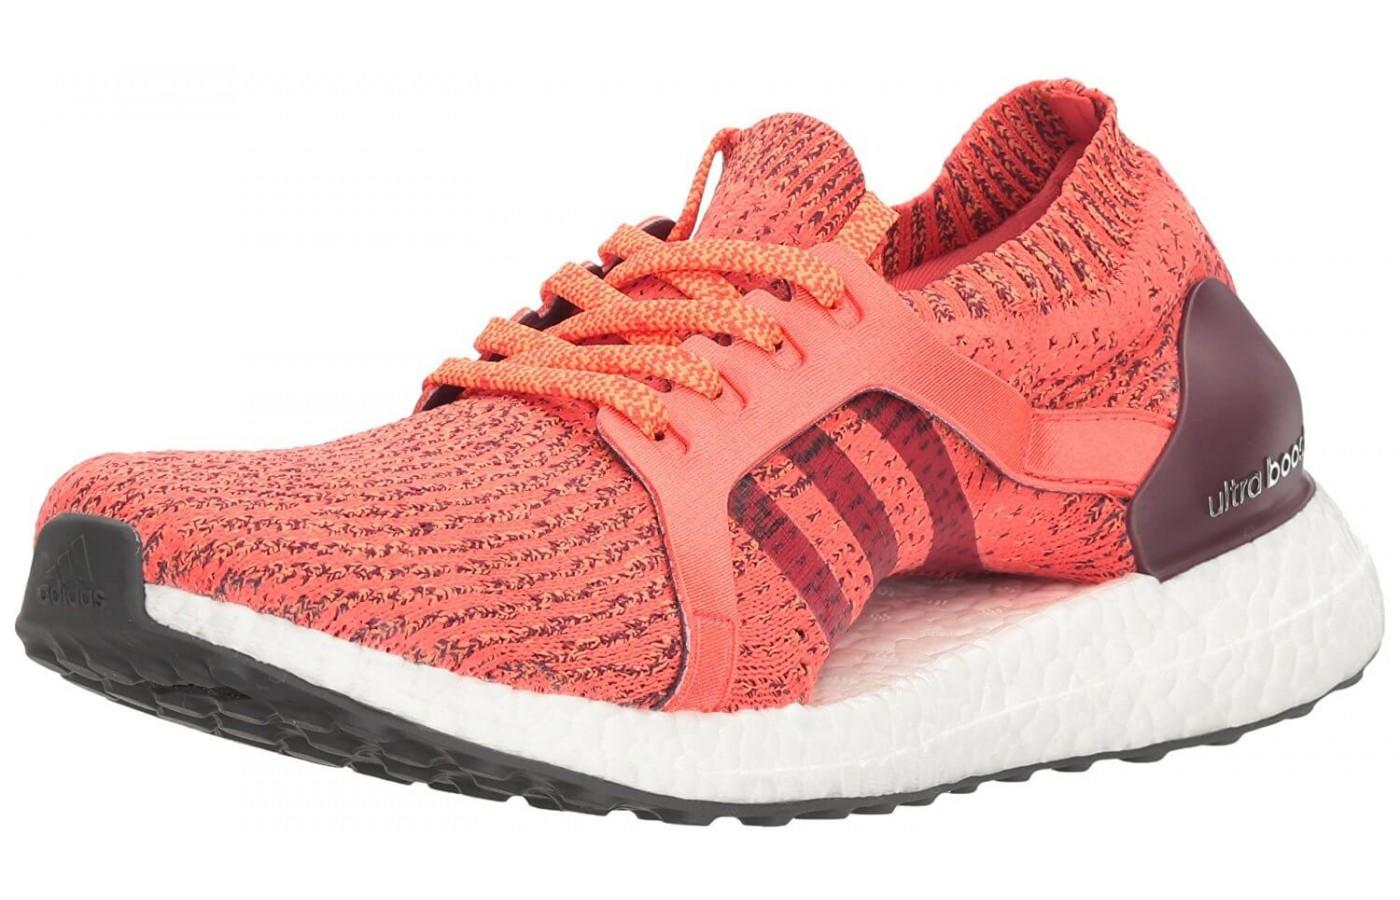 reputable site e4bcc 14970 Adidas Ultra Boost X